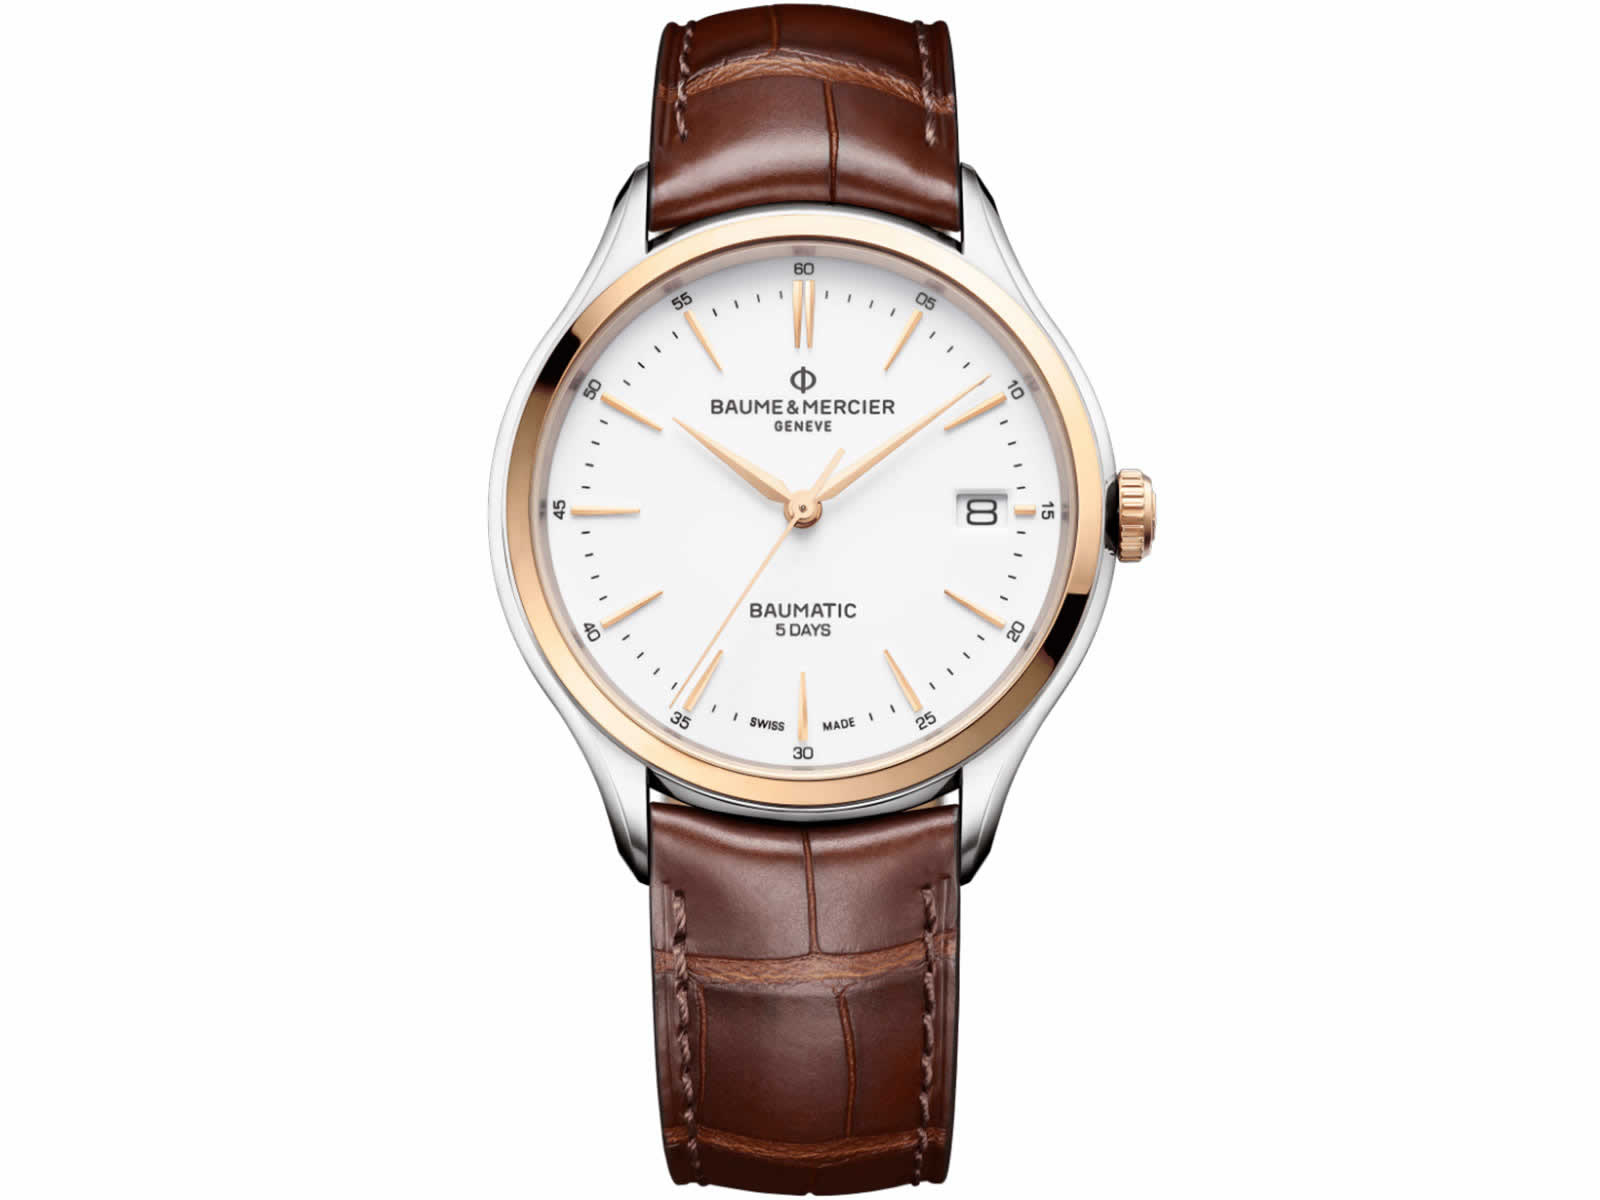 10401-Baume-Mercier-Clifton-Baumatic-Collection-Sihh2018-Brown-Front.jpg